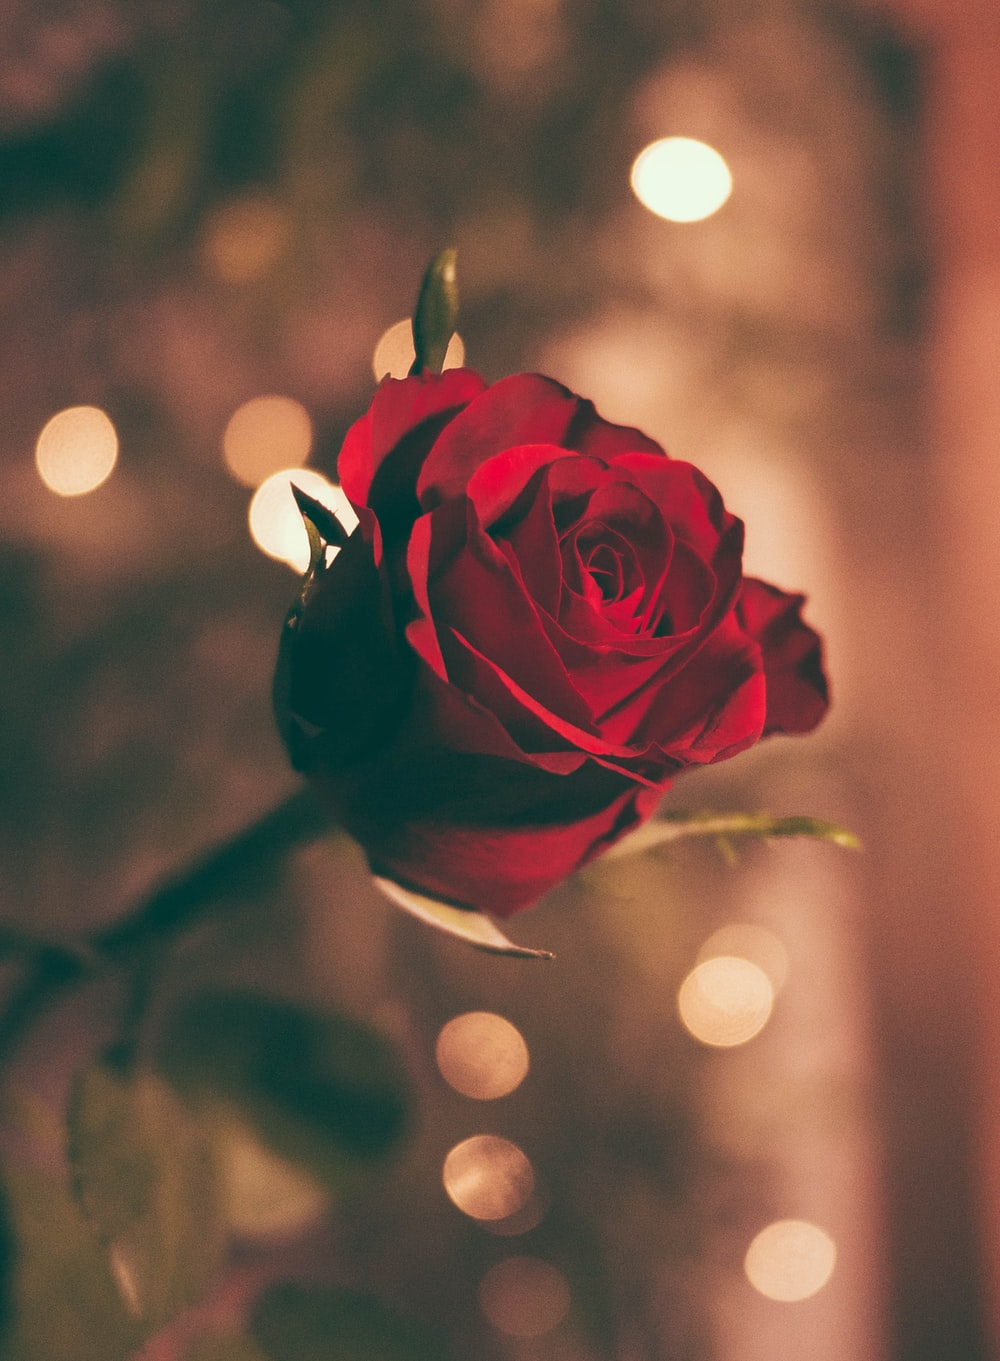 focused photo of a romantic red rose